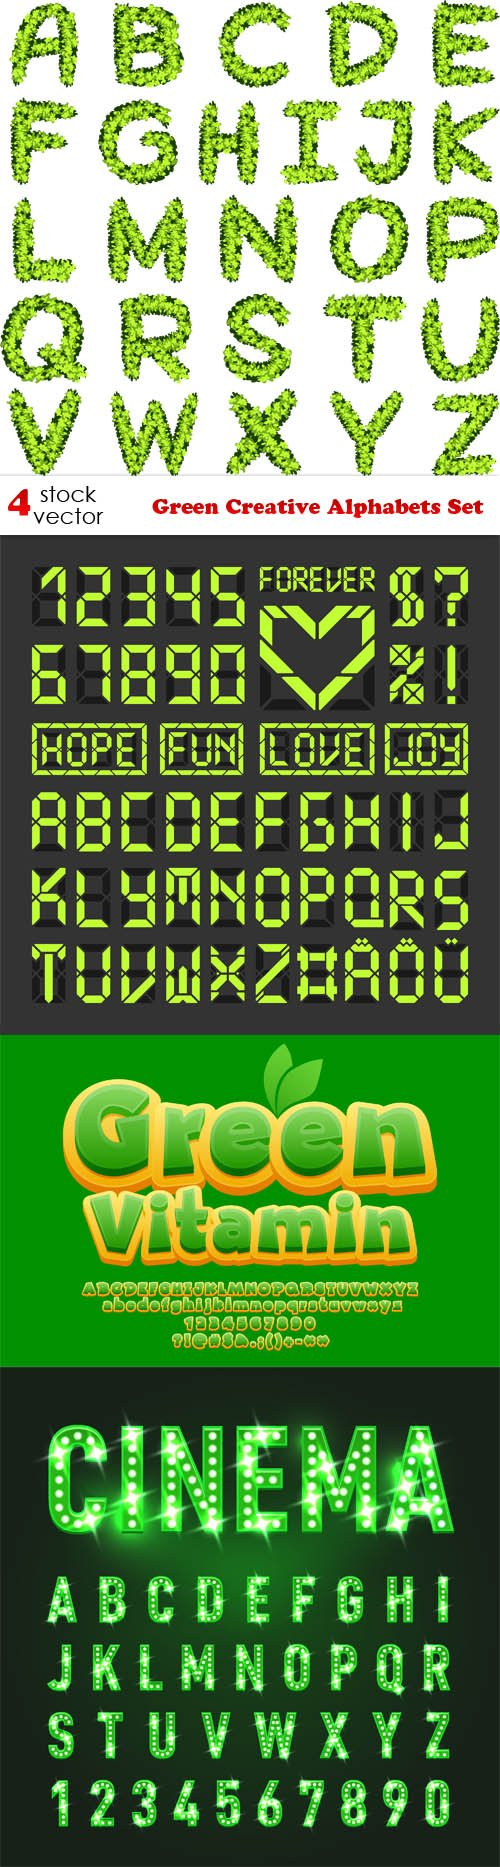 Vectors - Green Creative Alphabets Set